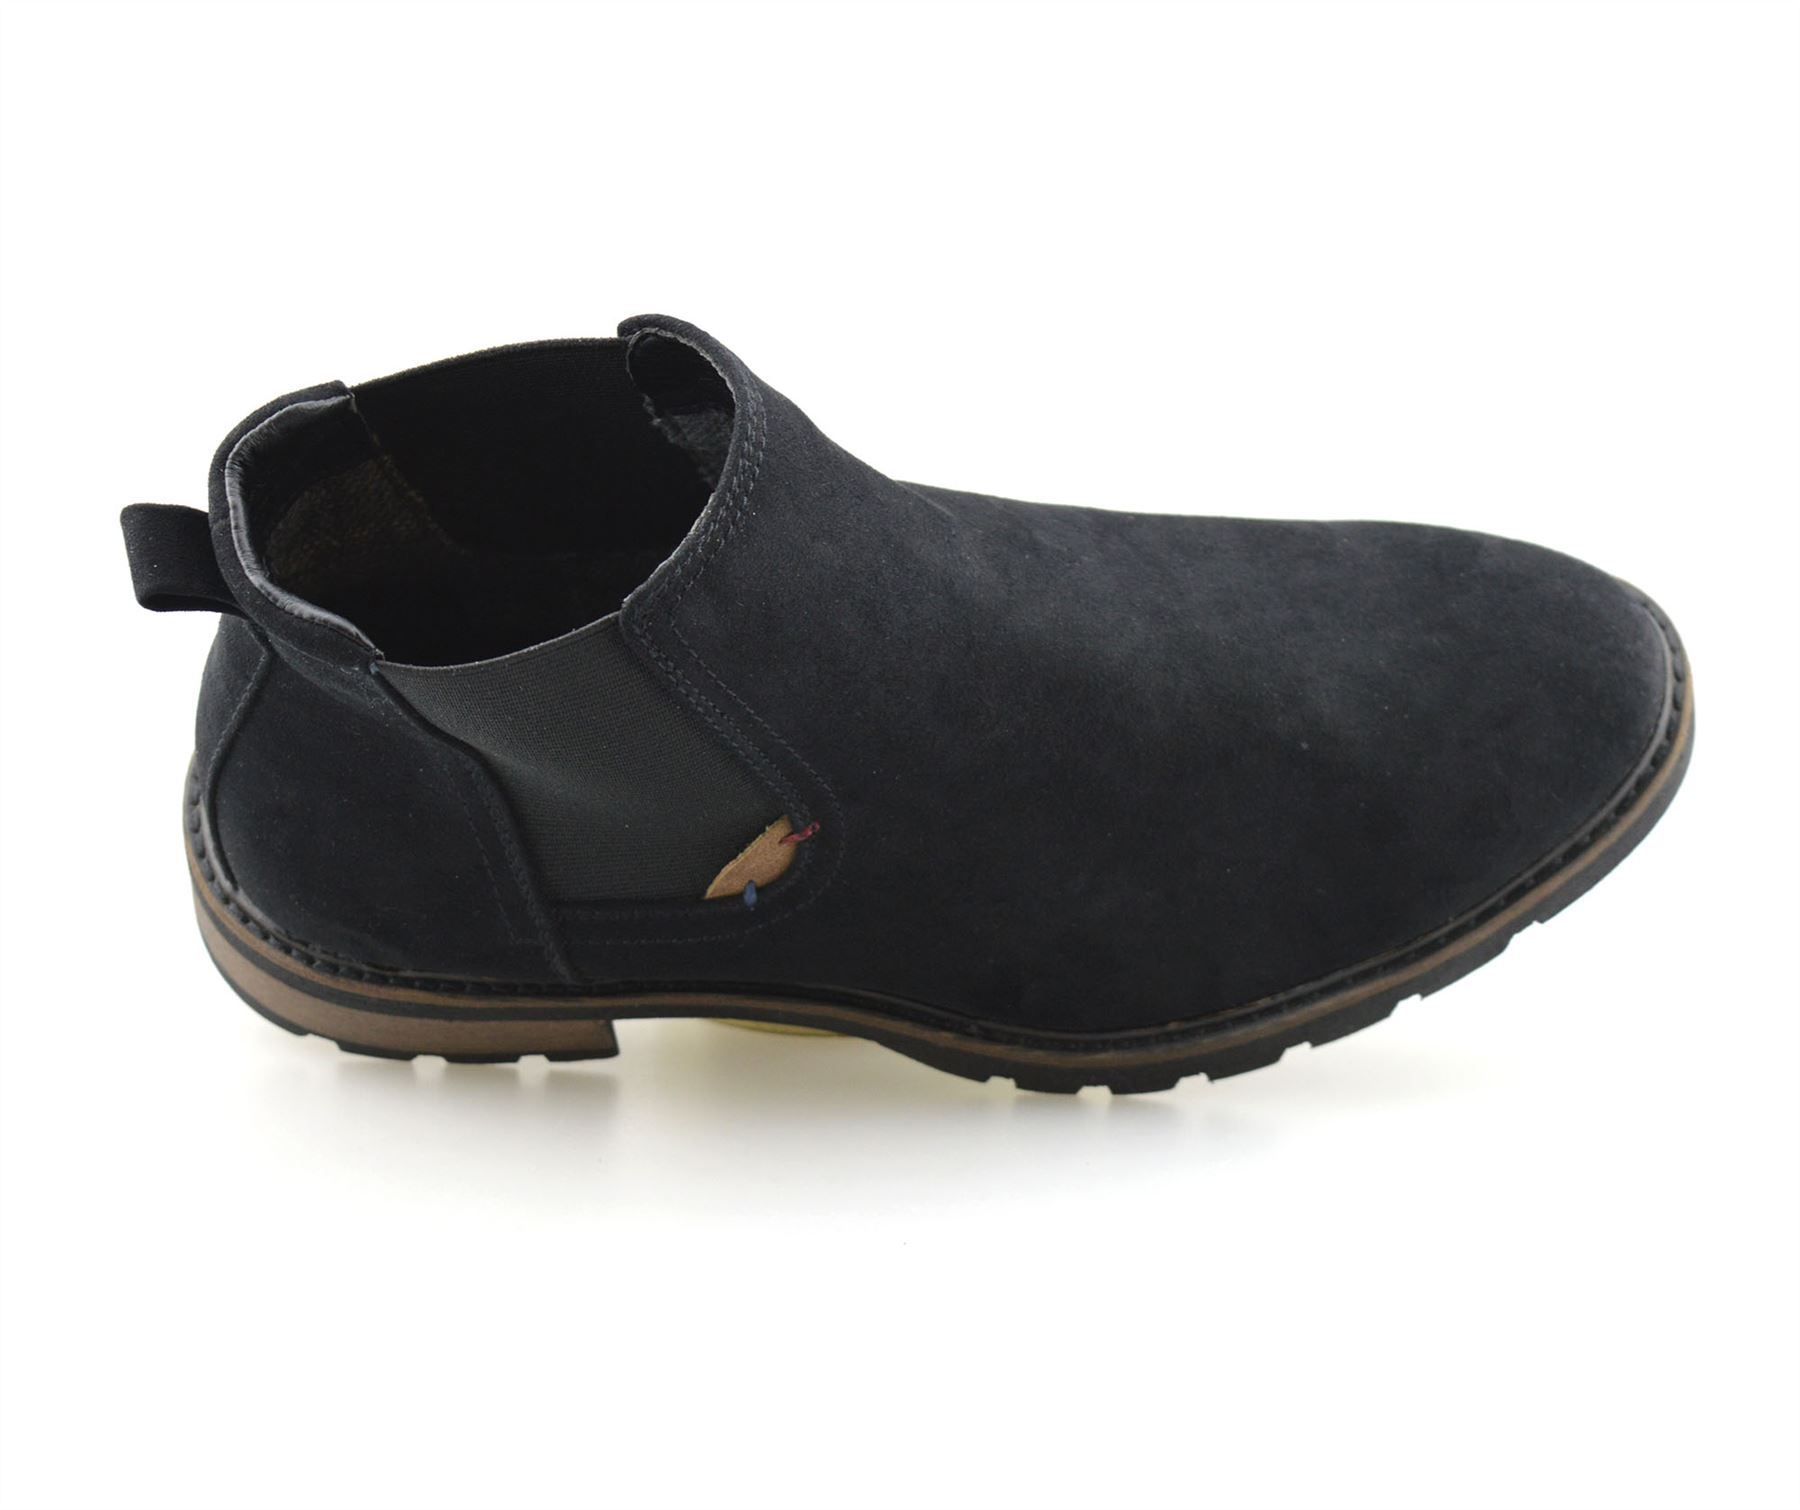 Mens-New-Smart-Formal-Chelsea-Dealer-Casual-Slip-On-Work-Ankle-Boots-Shoes-Size thumbnail 10